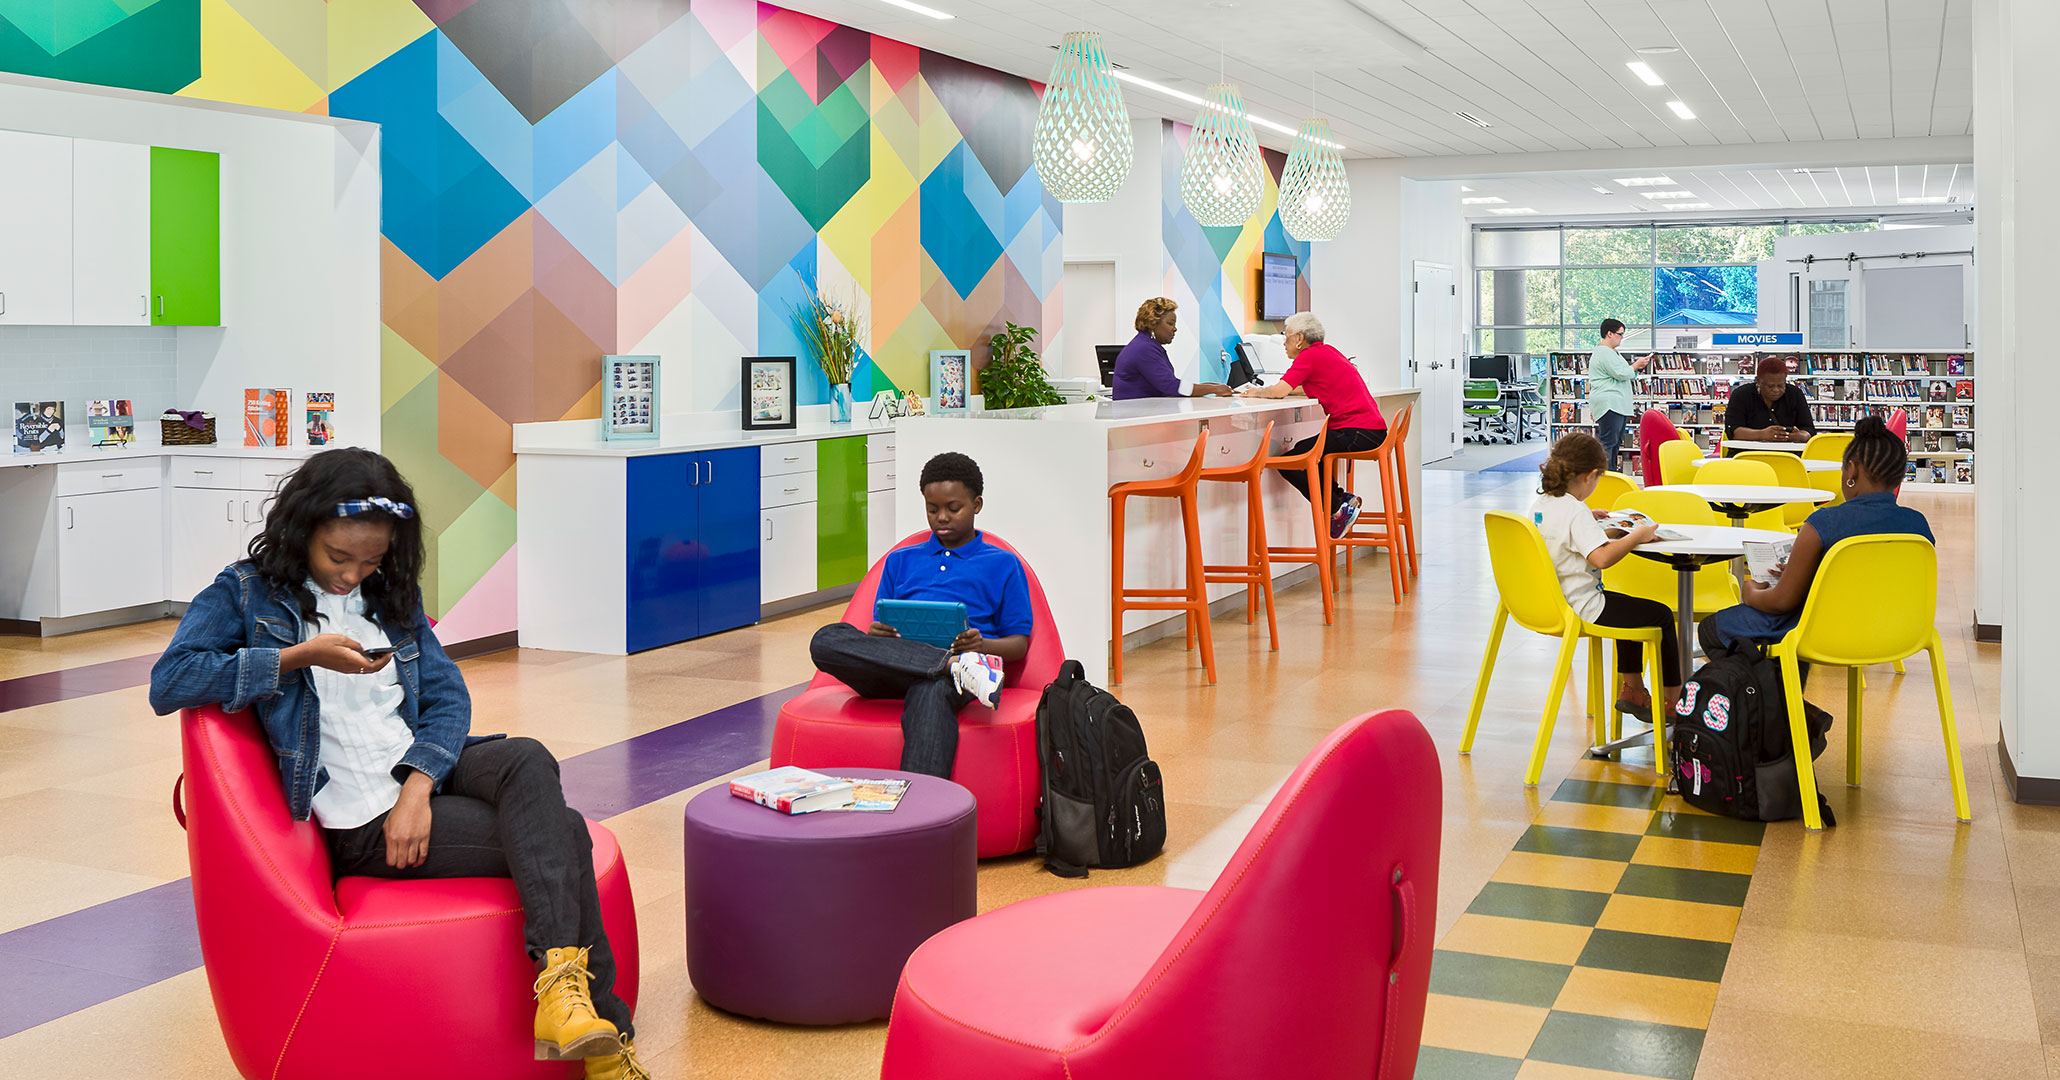 Richland County Library's North Main location worked with Boudreaux to design colorful spaces.